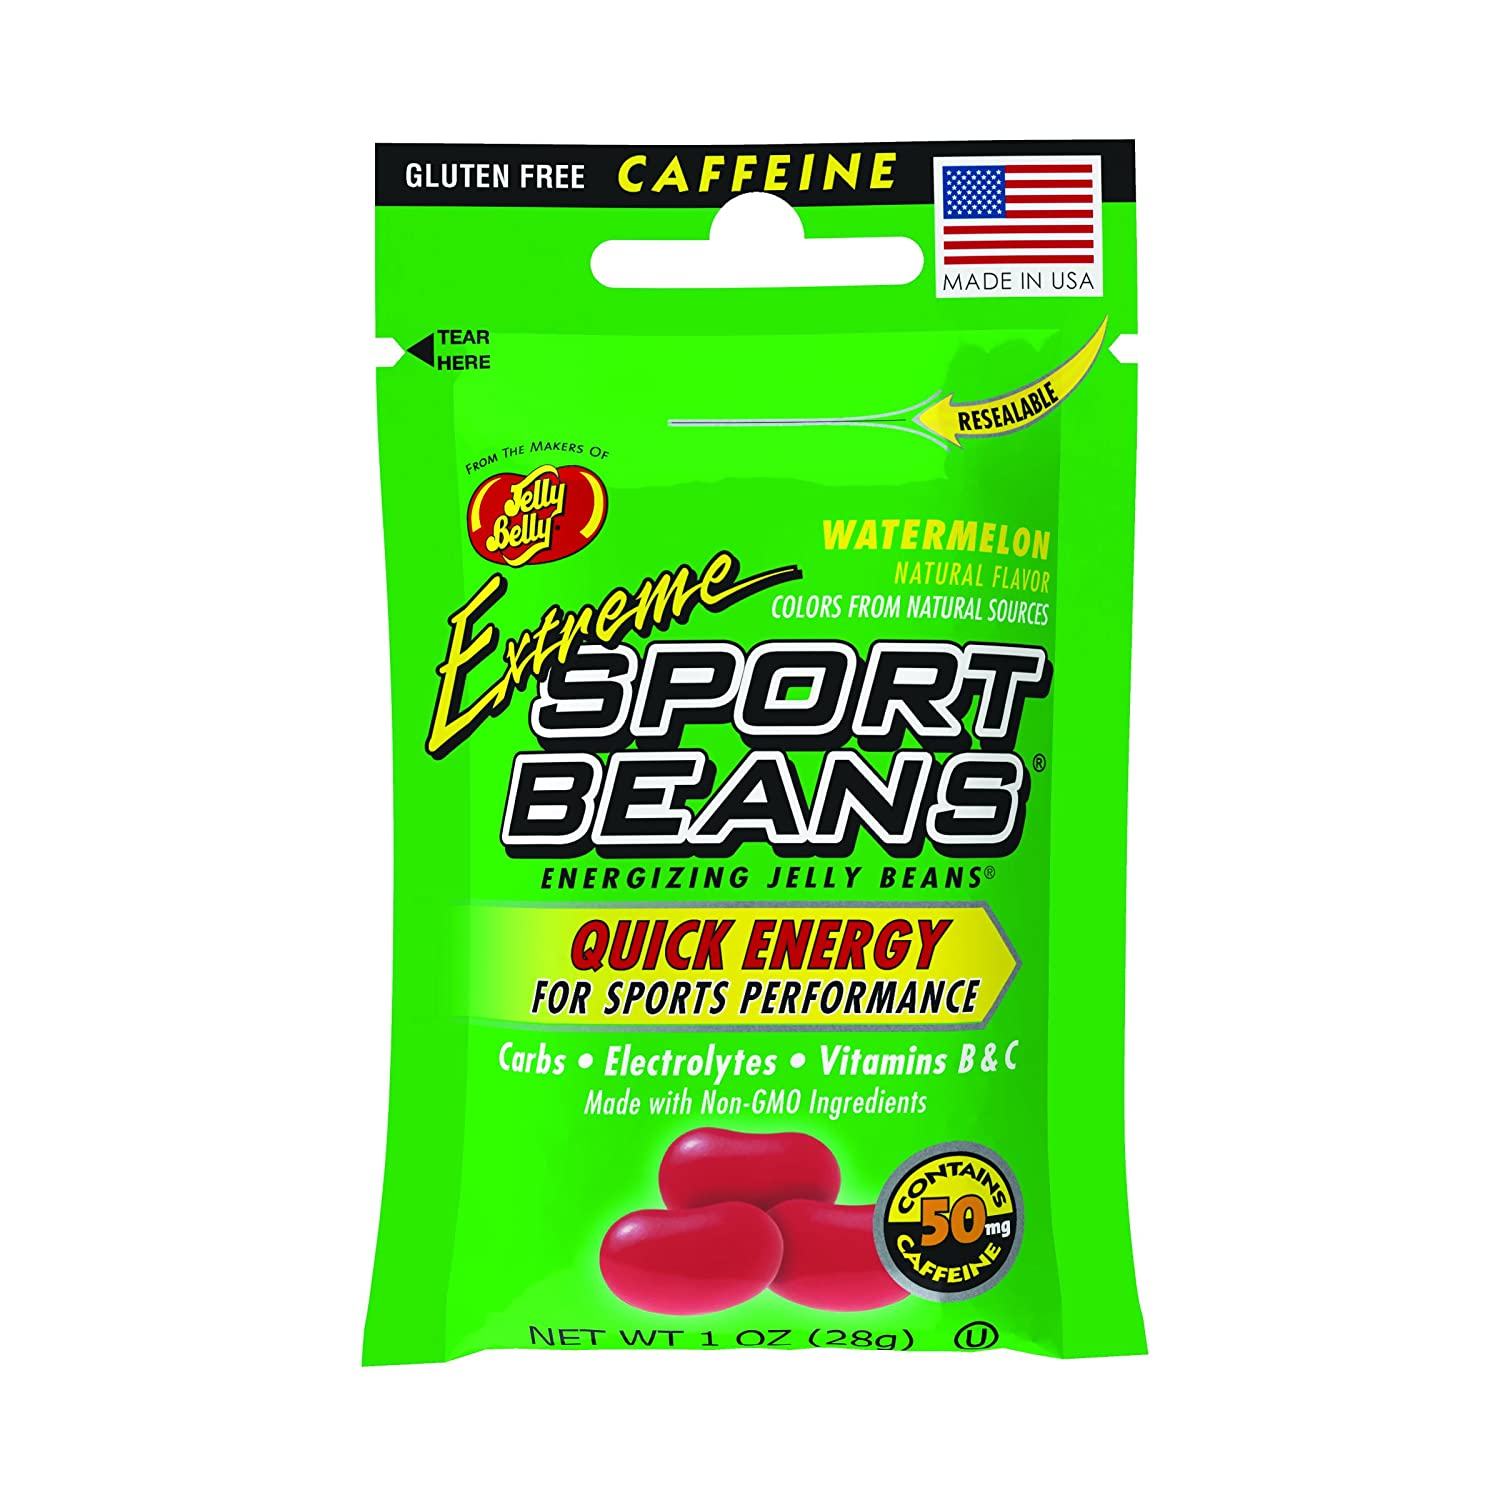 Jelly Belly Extreme Sport Beans, Caffeinated Jelly Beans, Watermelon Flavor, 24 Pack, 1-oz Each